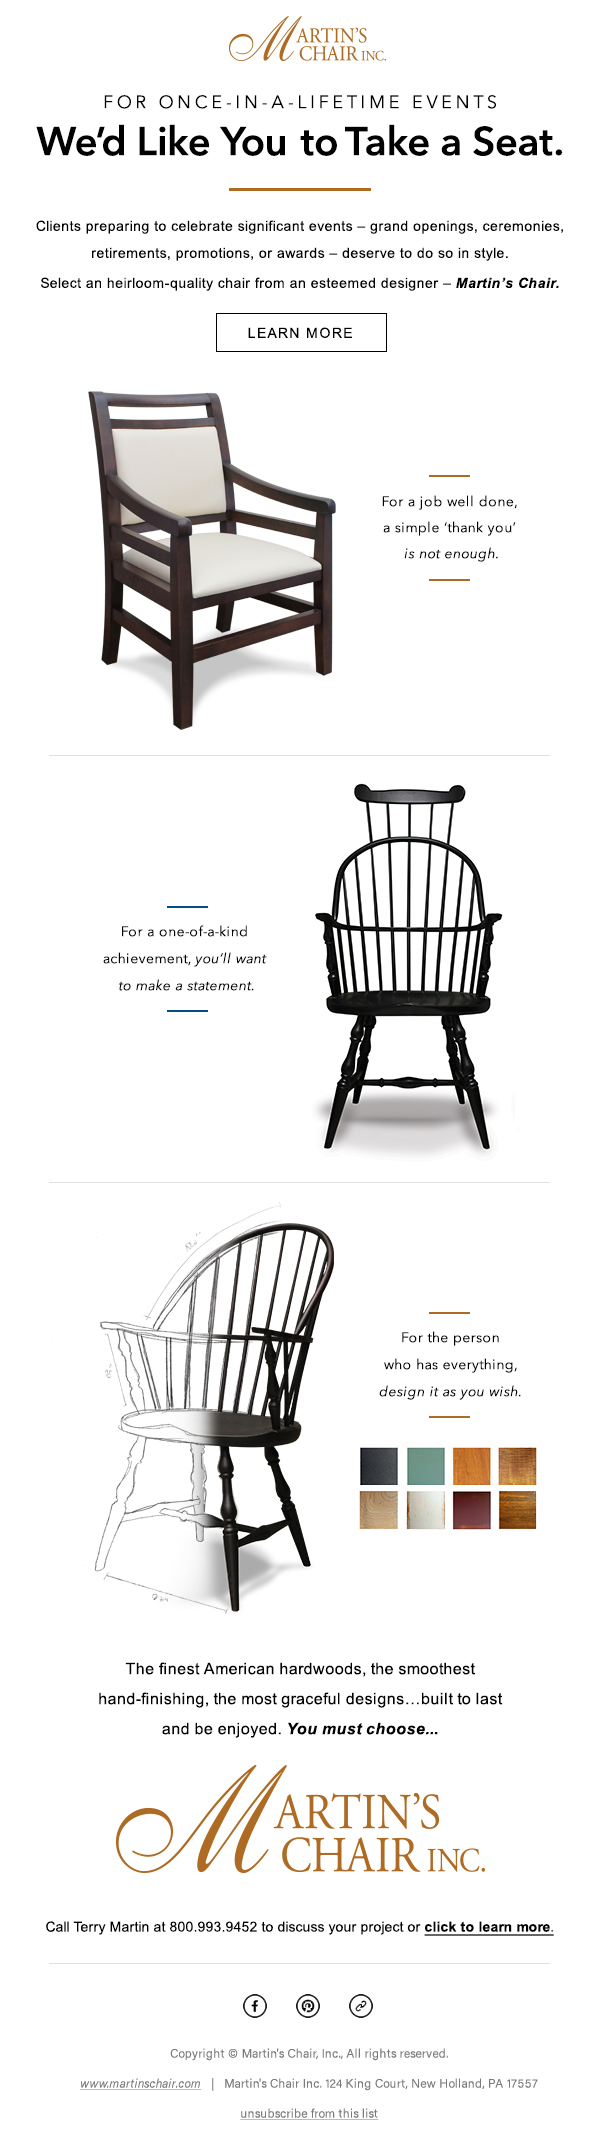 Martin's Chair Email Design